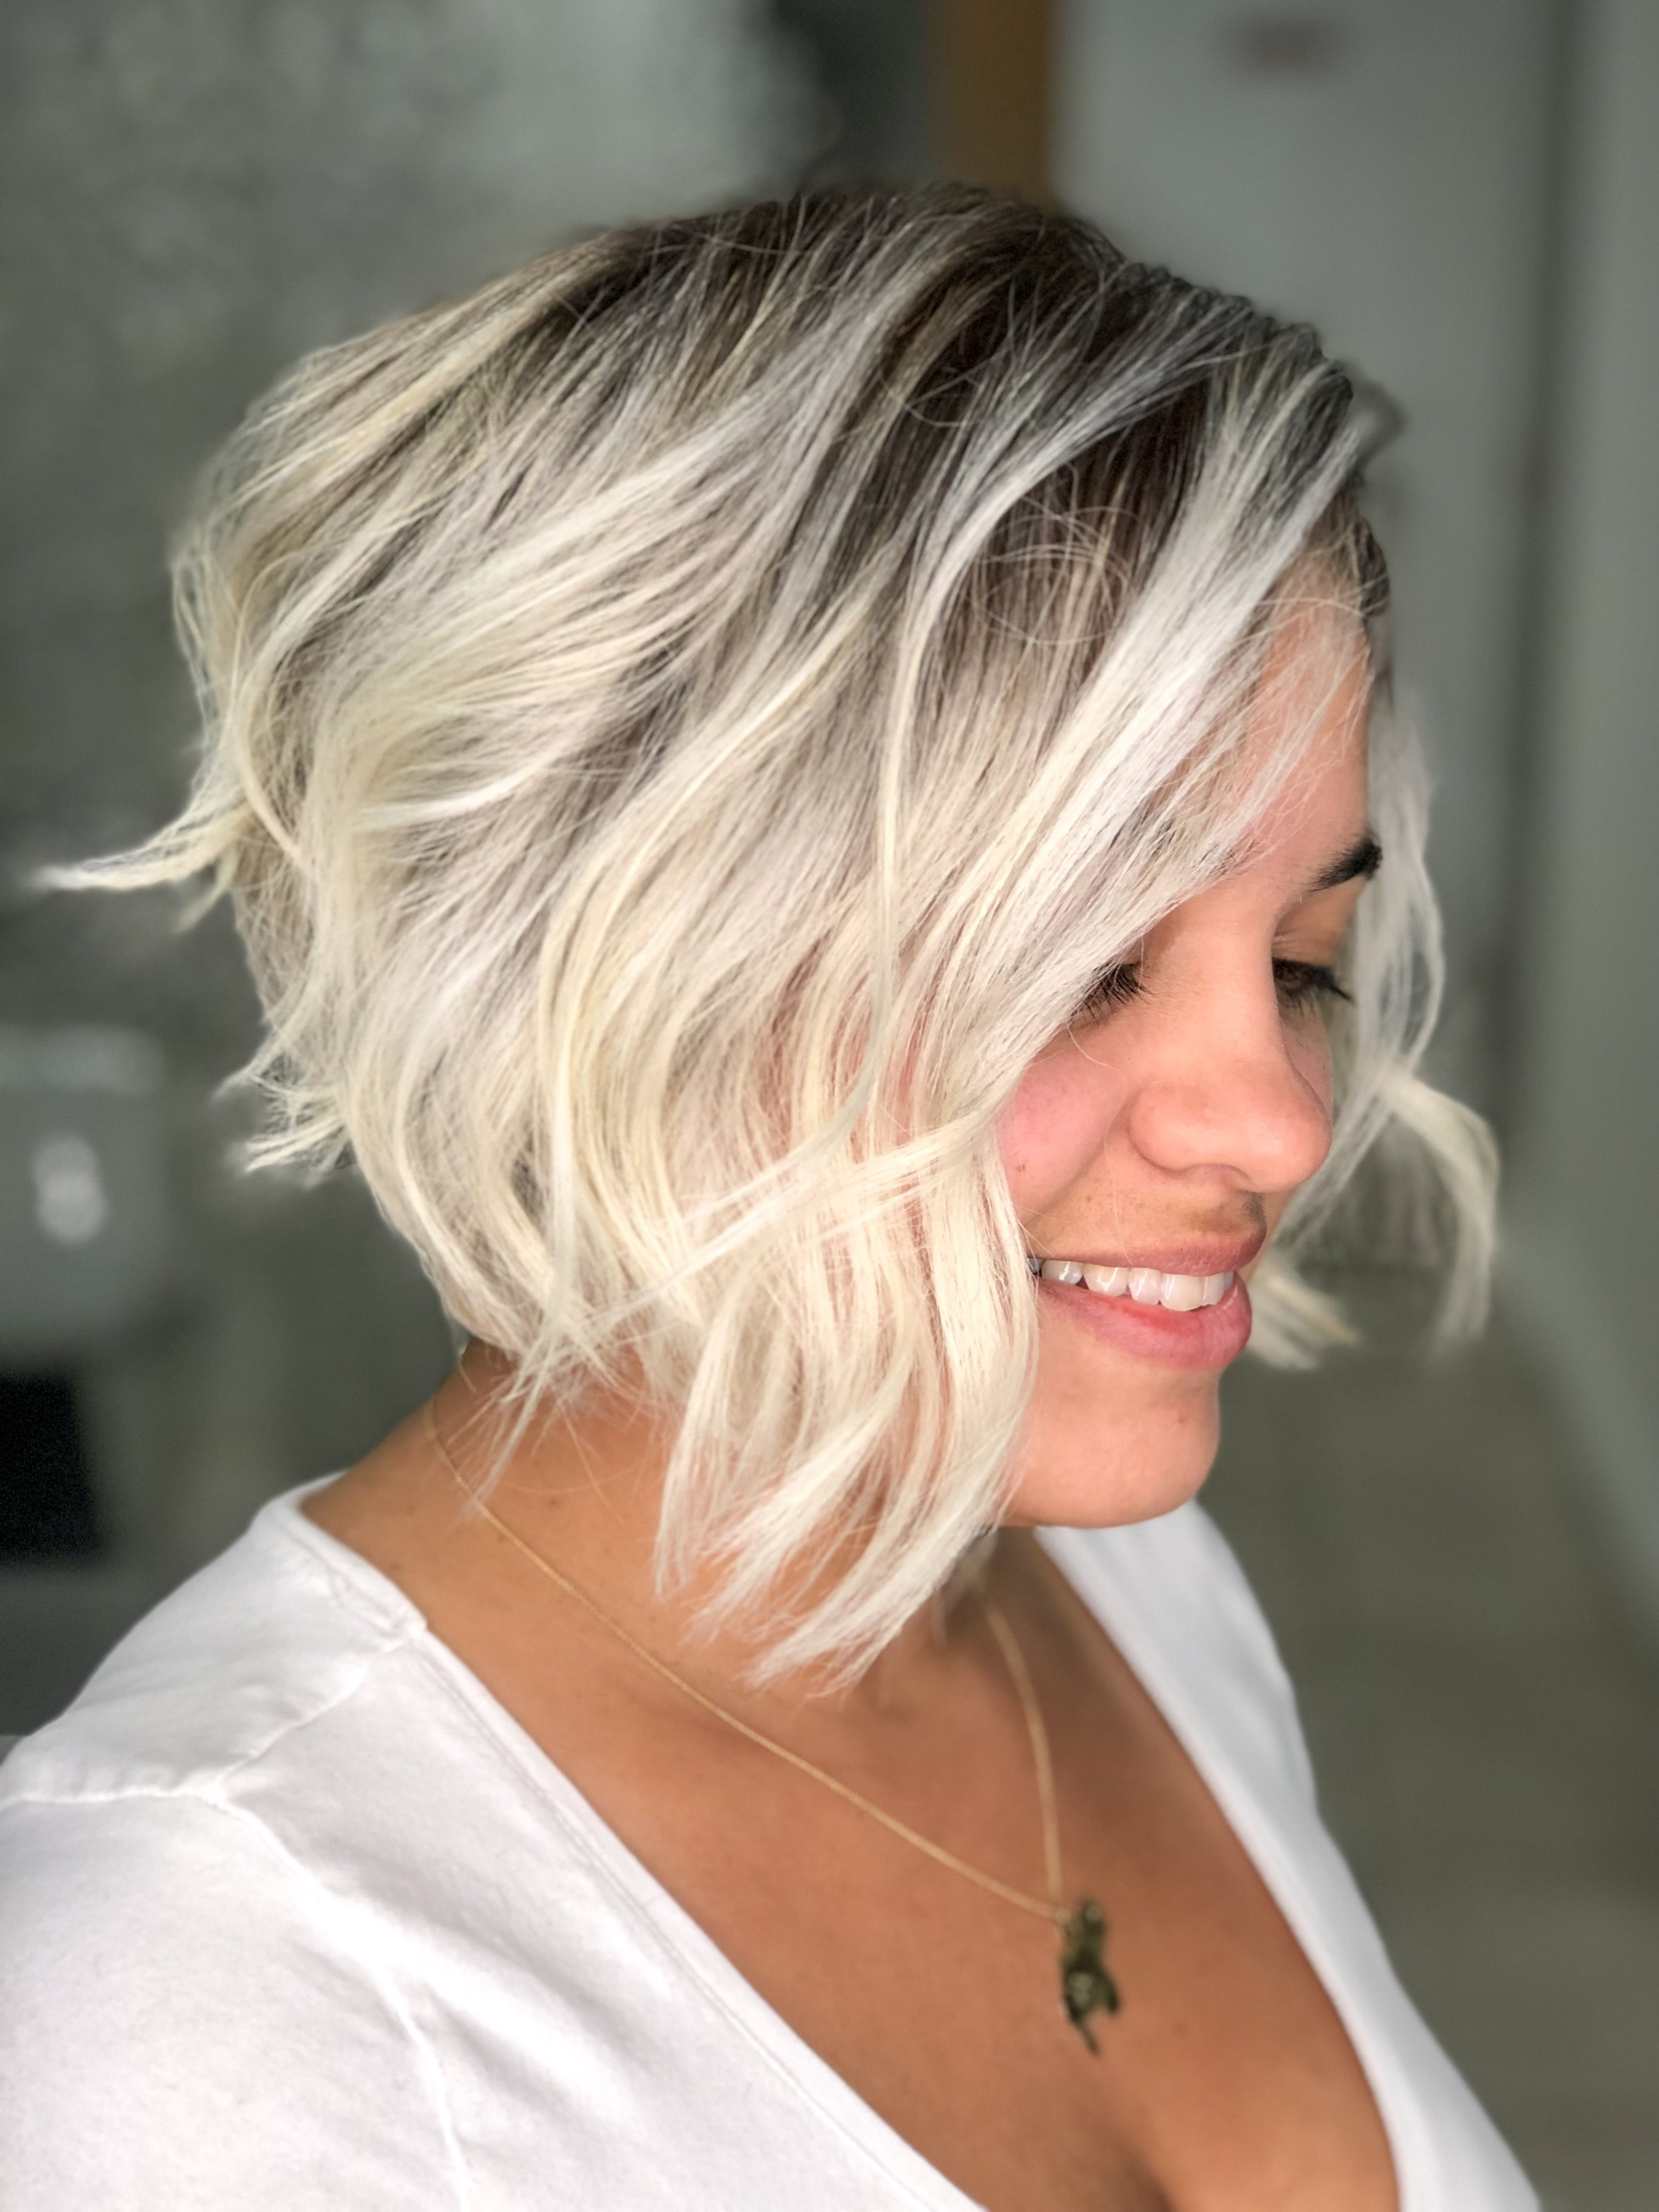 2017 Trendy Angled Blonde Haircuts In Cool Blonde Hair Color With Angled Bob Hair Cut And Waves (View 4 of 20)